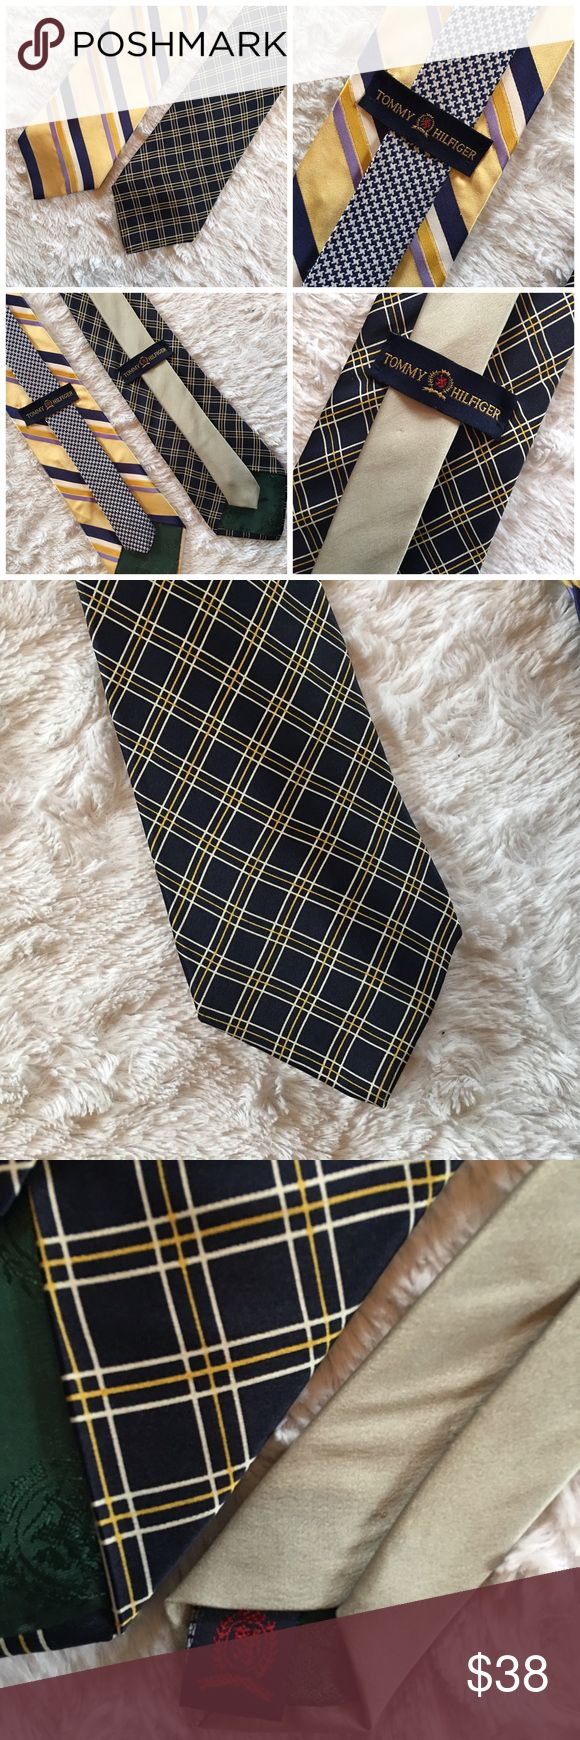 """Vintage •!TOMMY HILFIGER • Silk Tie Bundle Vintage Tommy Hilfiger 💯% Silk Ties • Imported Fabric • Made in USA • Yellow>> Approx: 3.5"""" x 60"""" Blue>> Approx: 4"""" x 62 • Blue Tie would be considered Extra-Long Tommy Hilfiger Accessories Ties"""